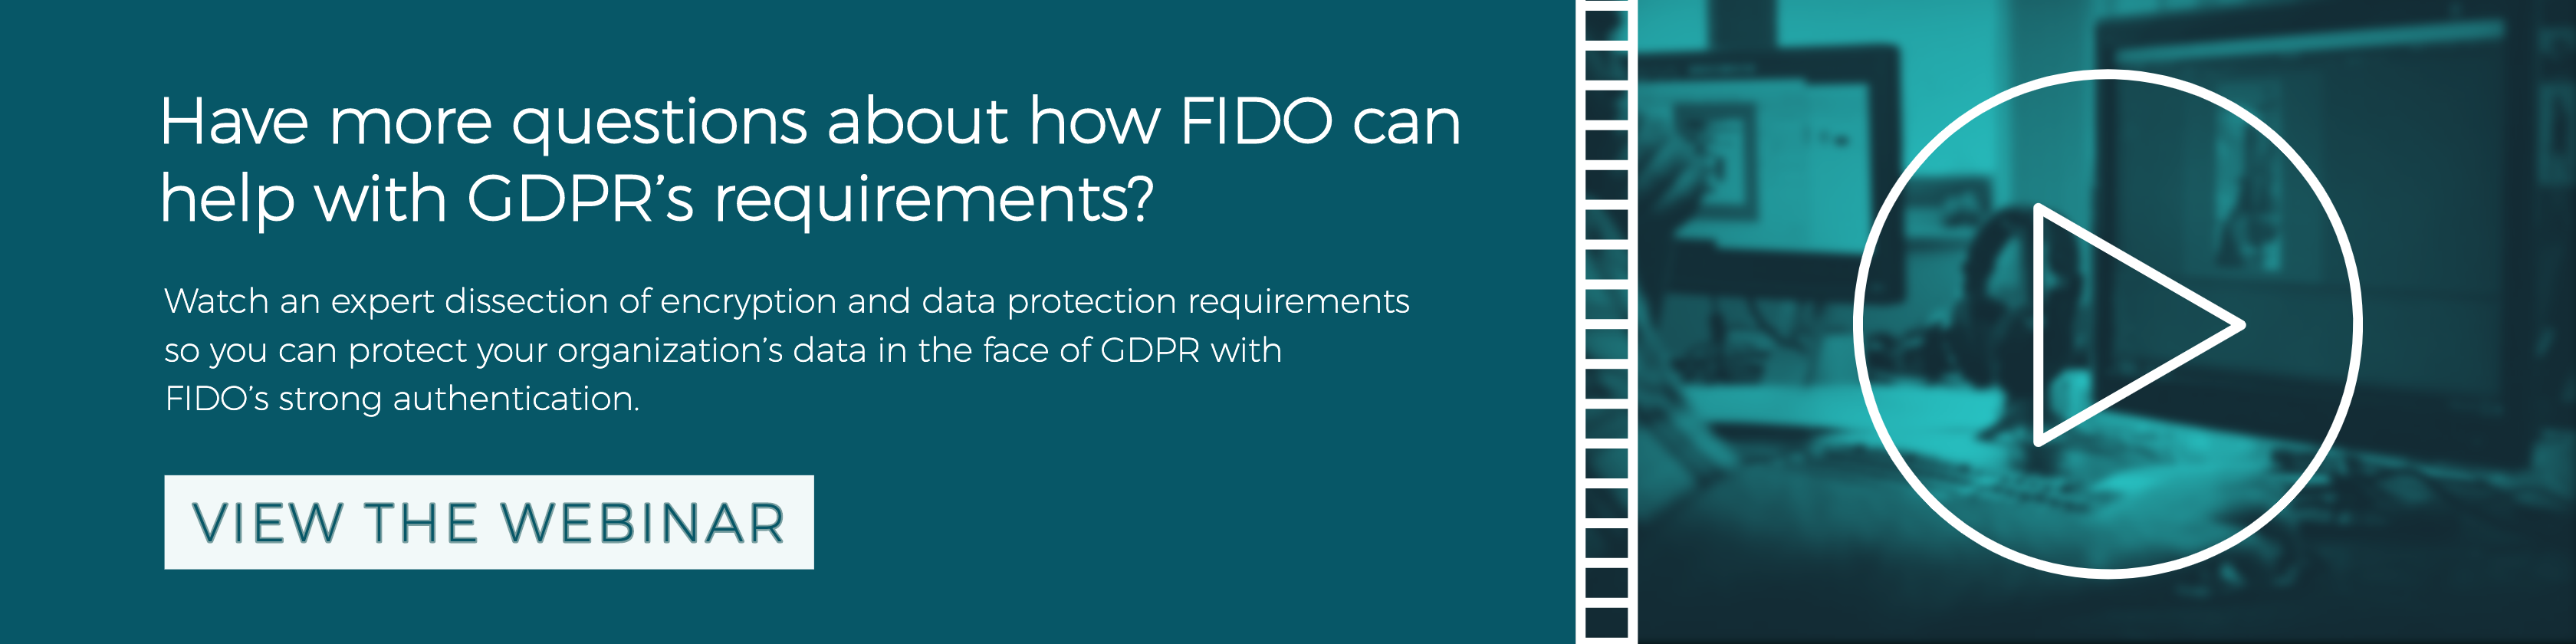 Click here to watch a simple breakdown of GDPR's most complicated encryption requirements and how FIDO's strong authentication can help.